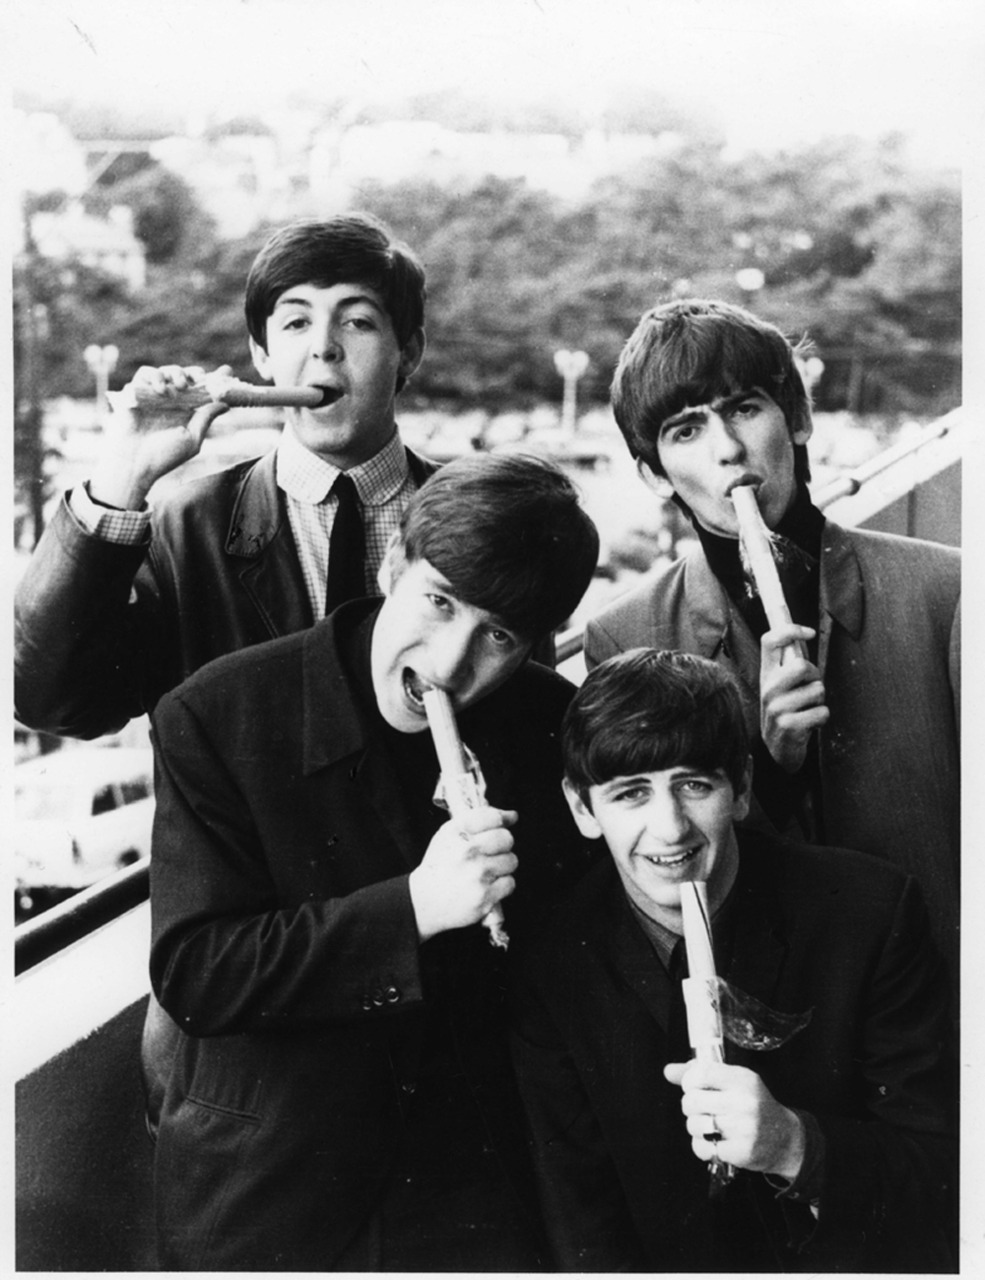 The Beatles - Anthropology